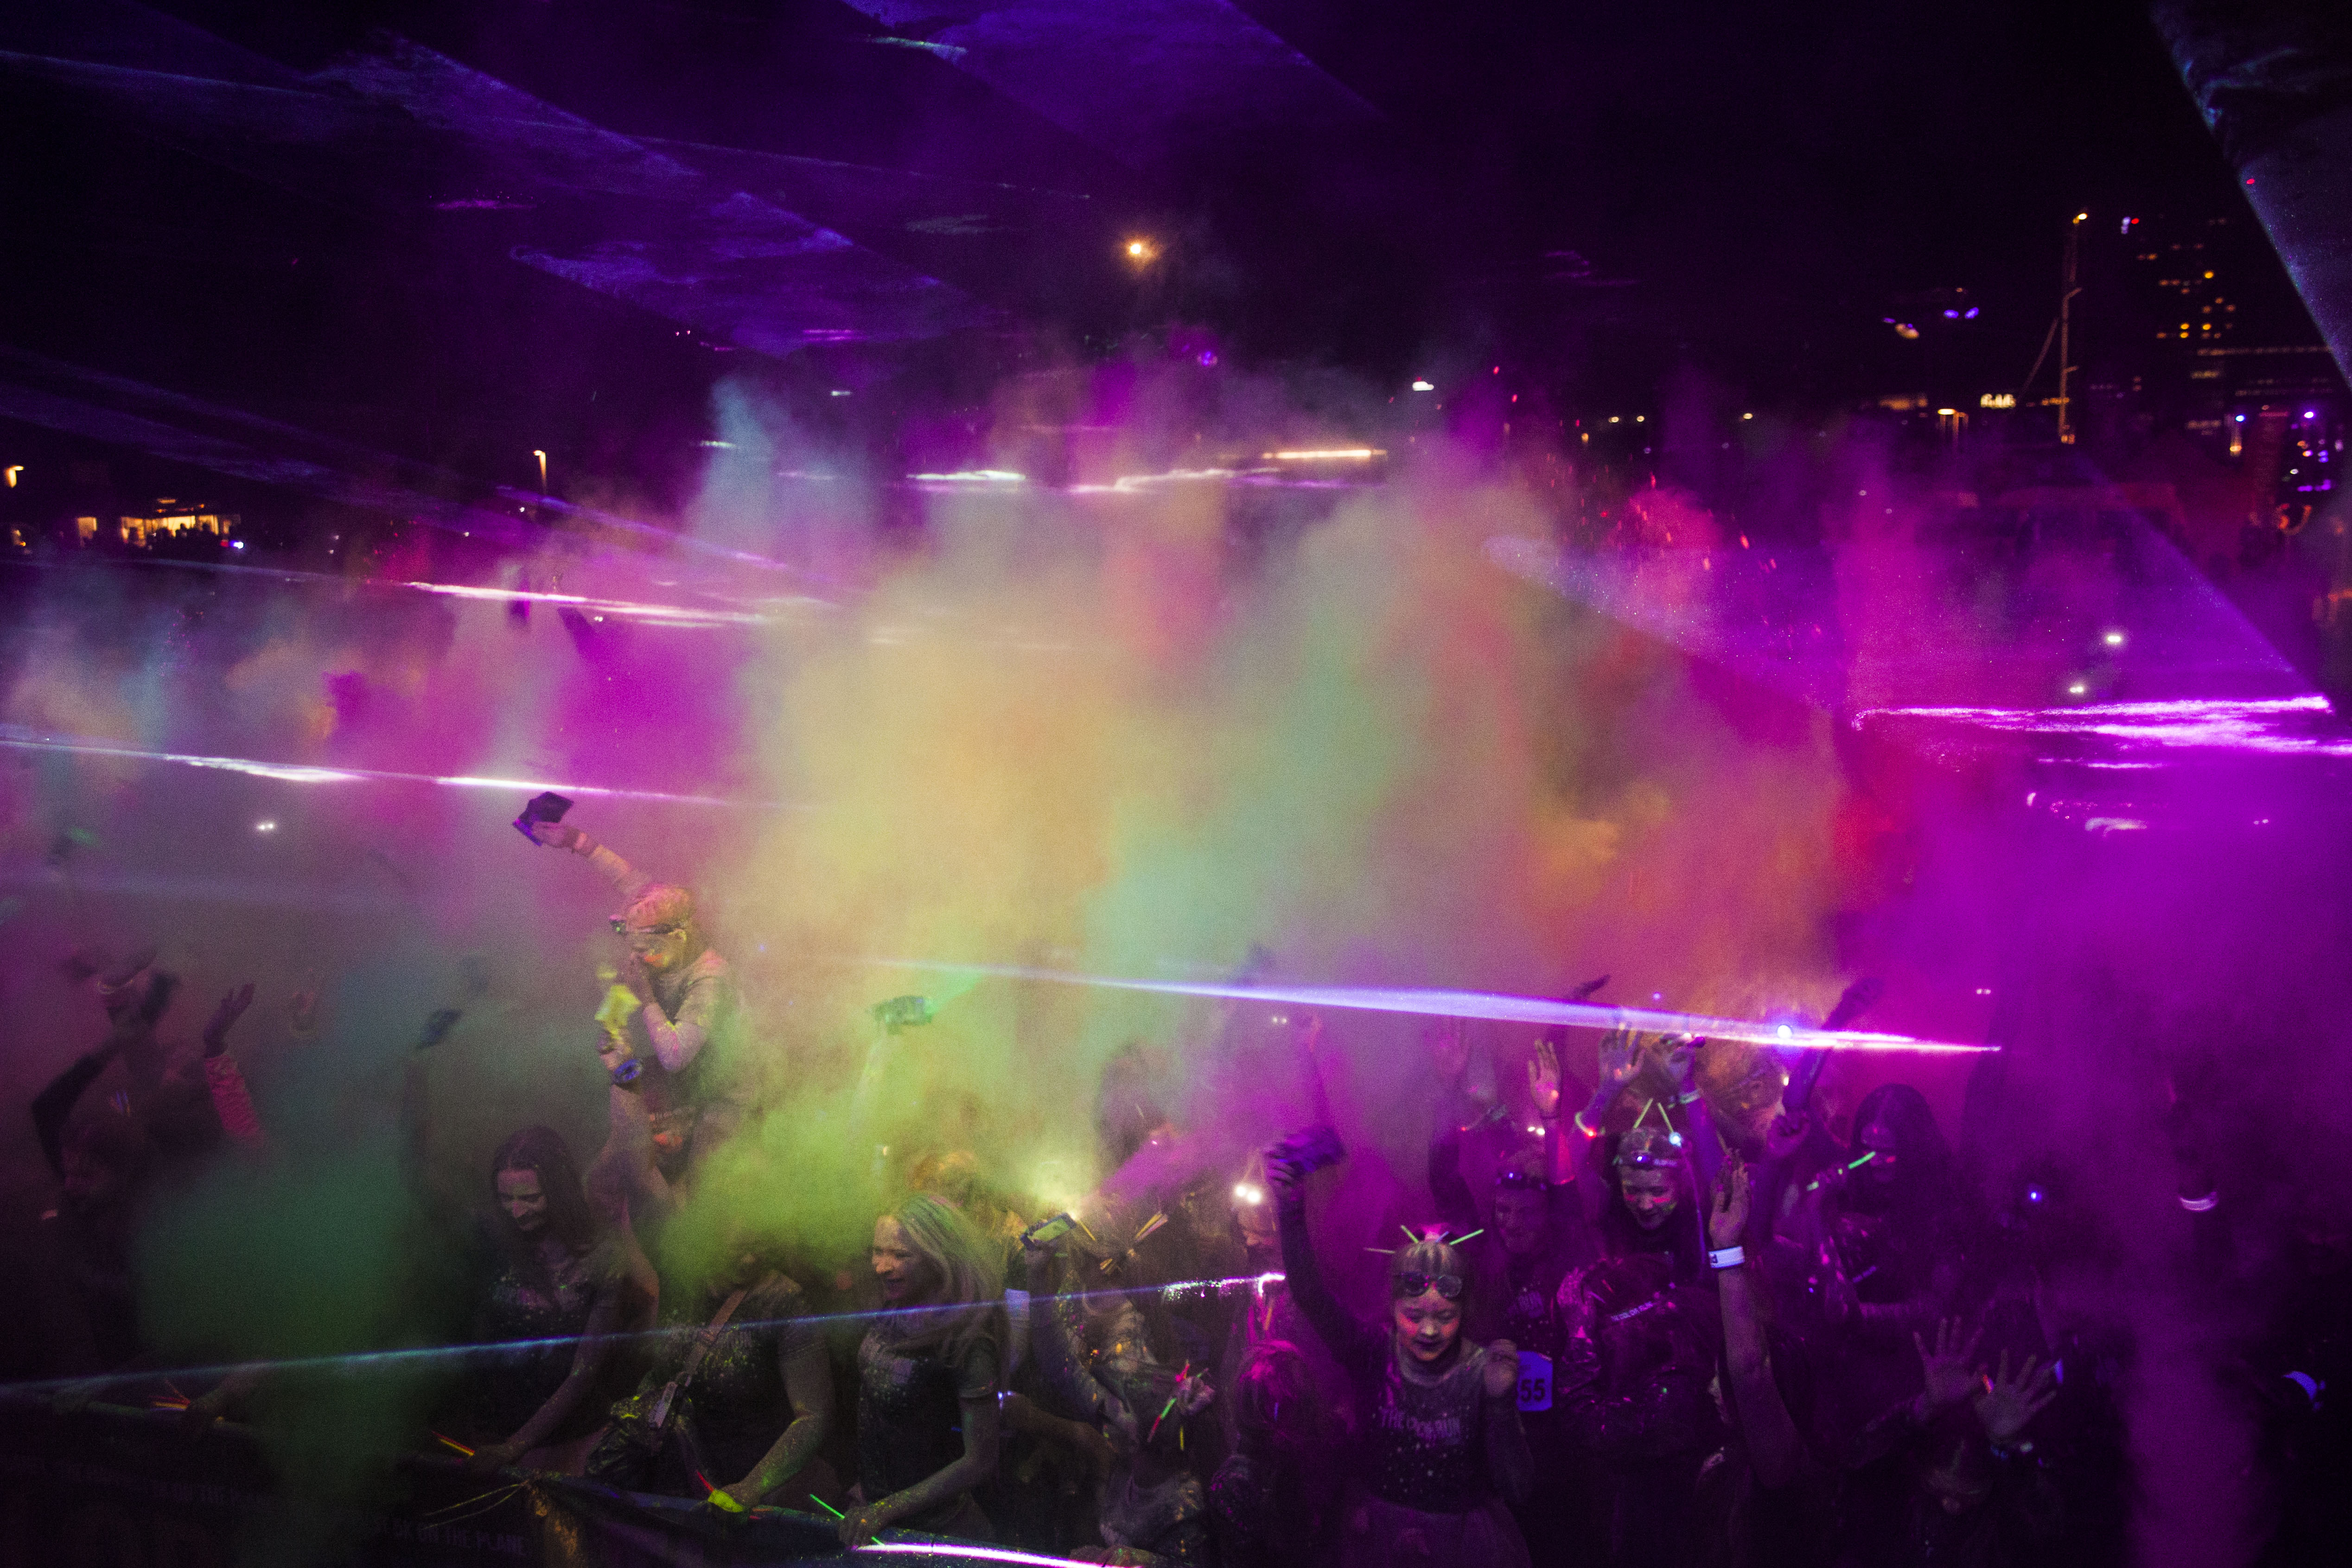 TheColorRunNight2015_HelenaLundquist_mindre_42